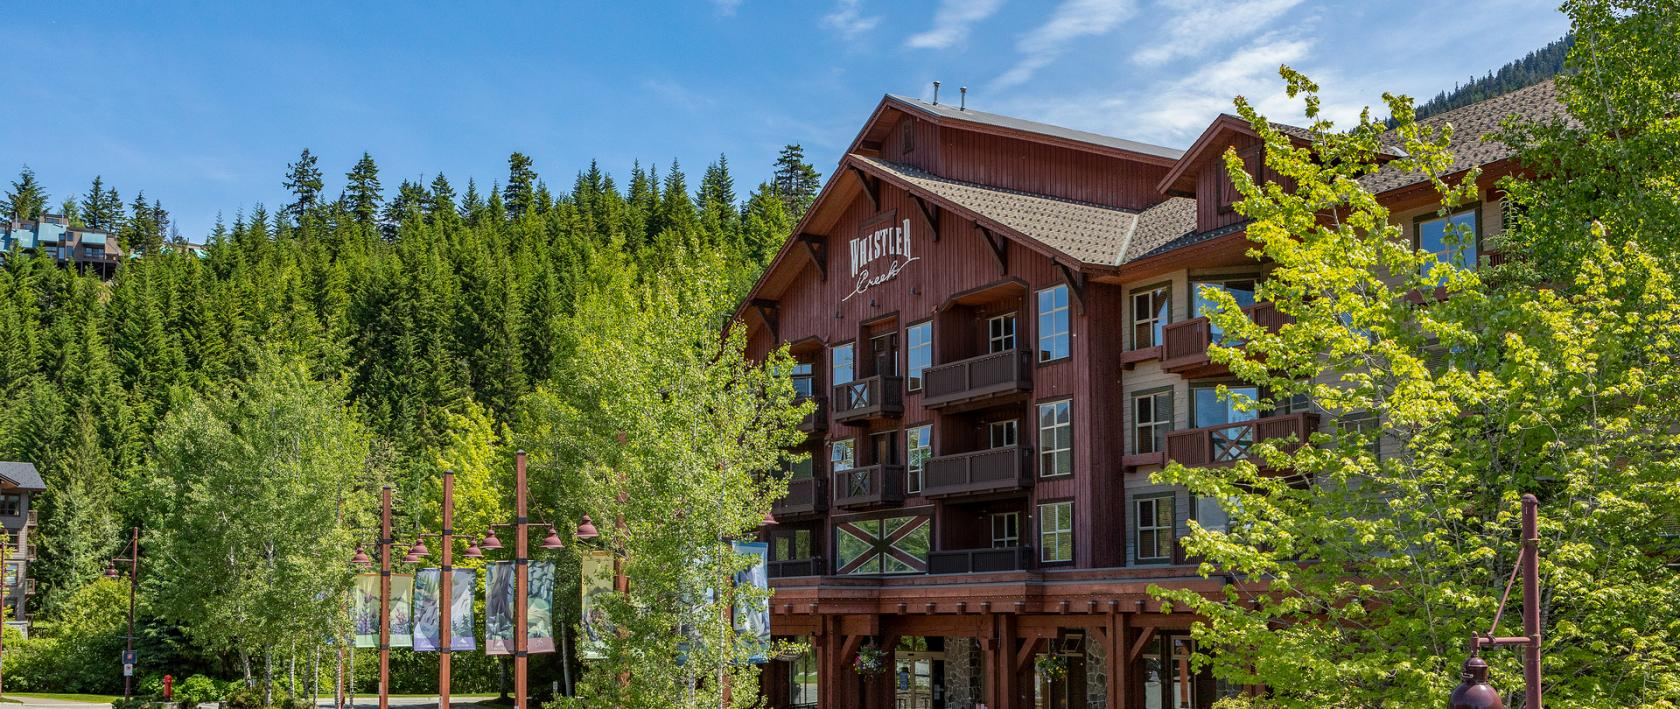 201C - 2036 London Lane, Whistler Creek, Whistler